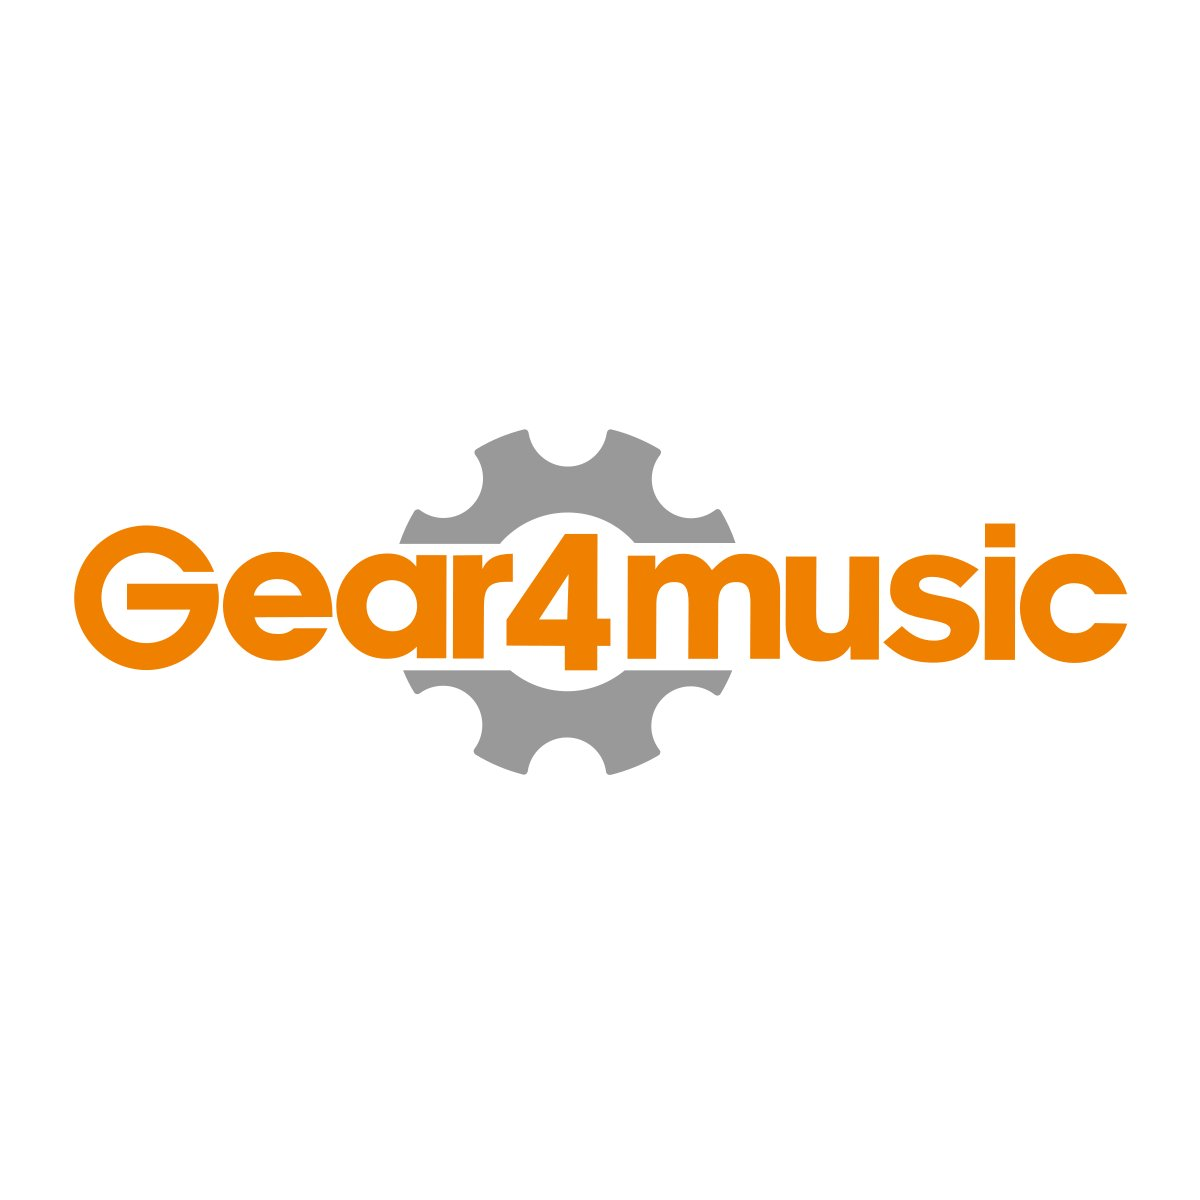 Metal Studio Shaker de Gear4music